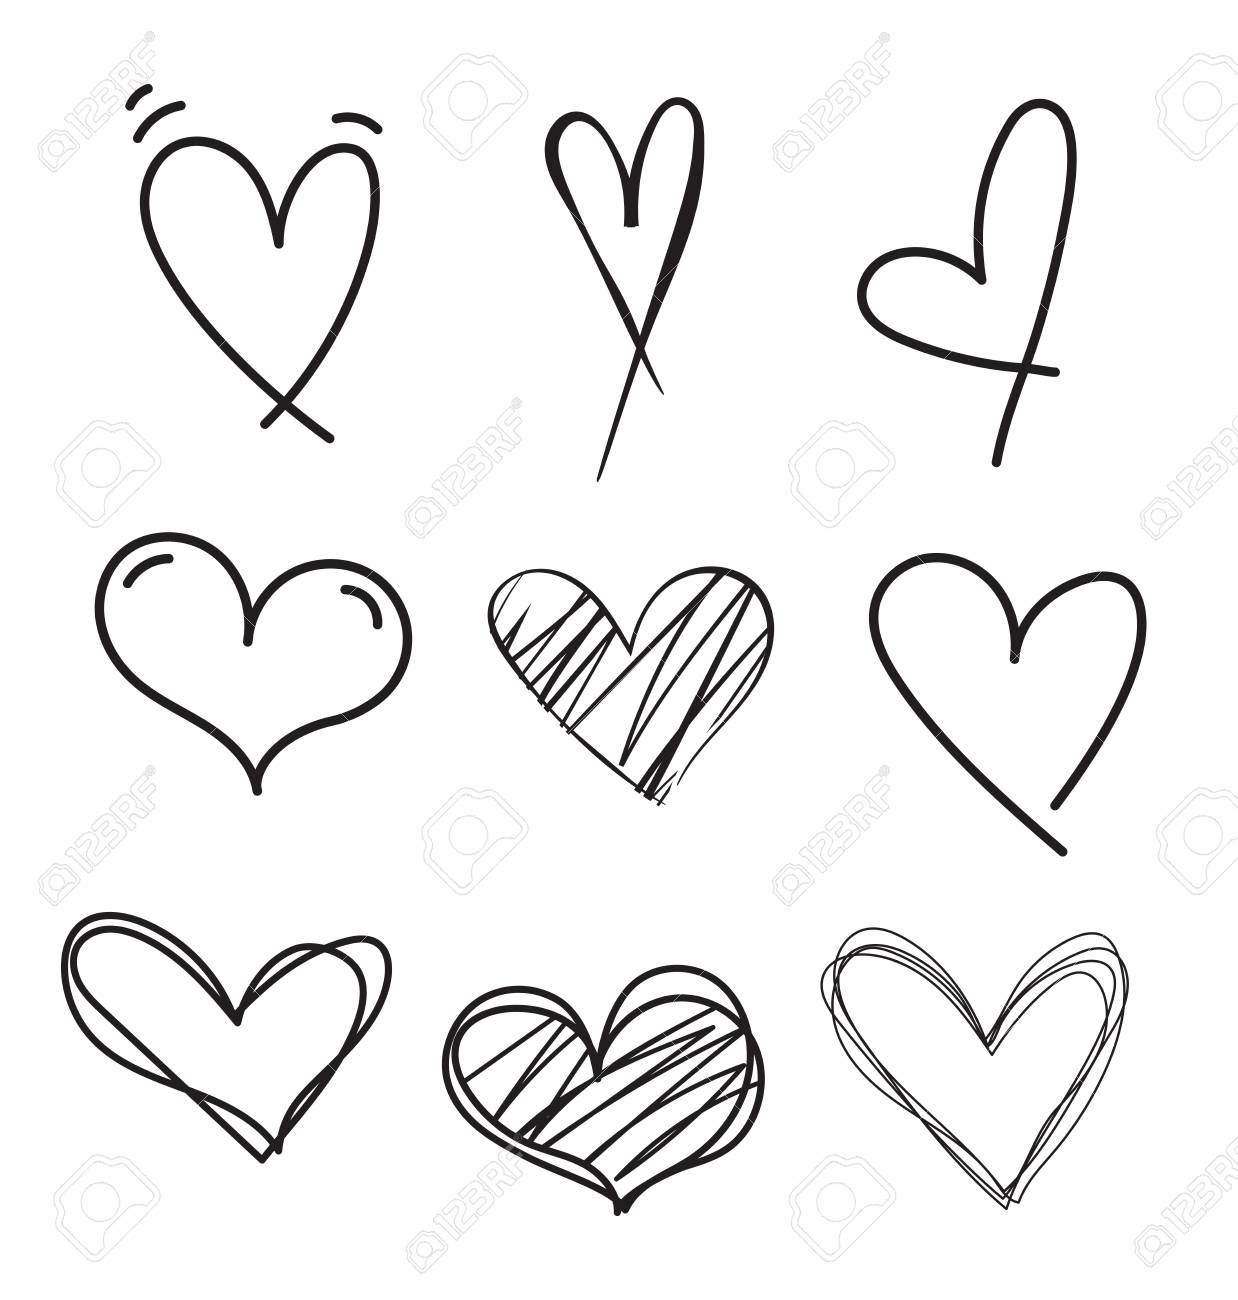 Hand drawn doodle heart vector set.Rough marker hearts isolated on white background. Outline vector heart collection. - 97276468